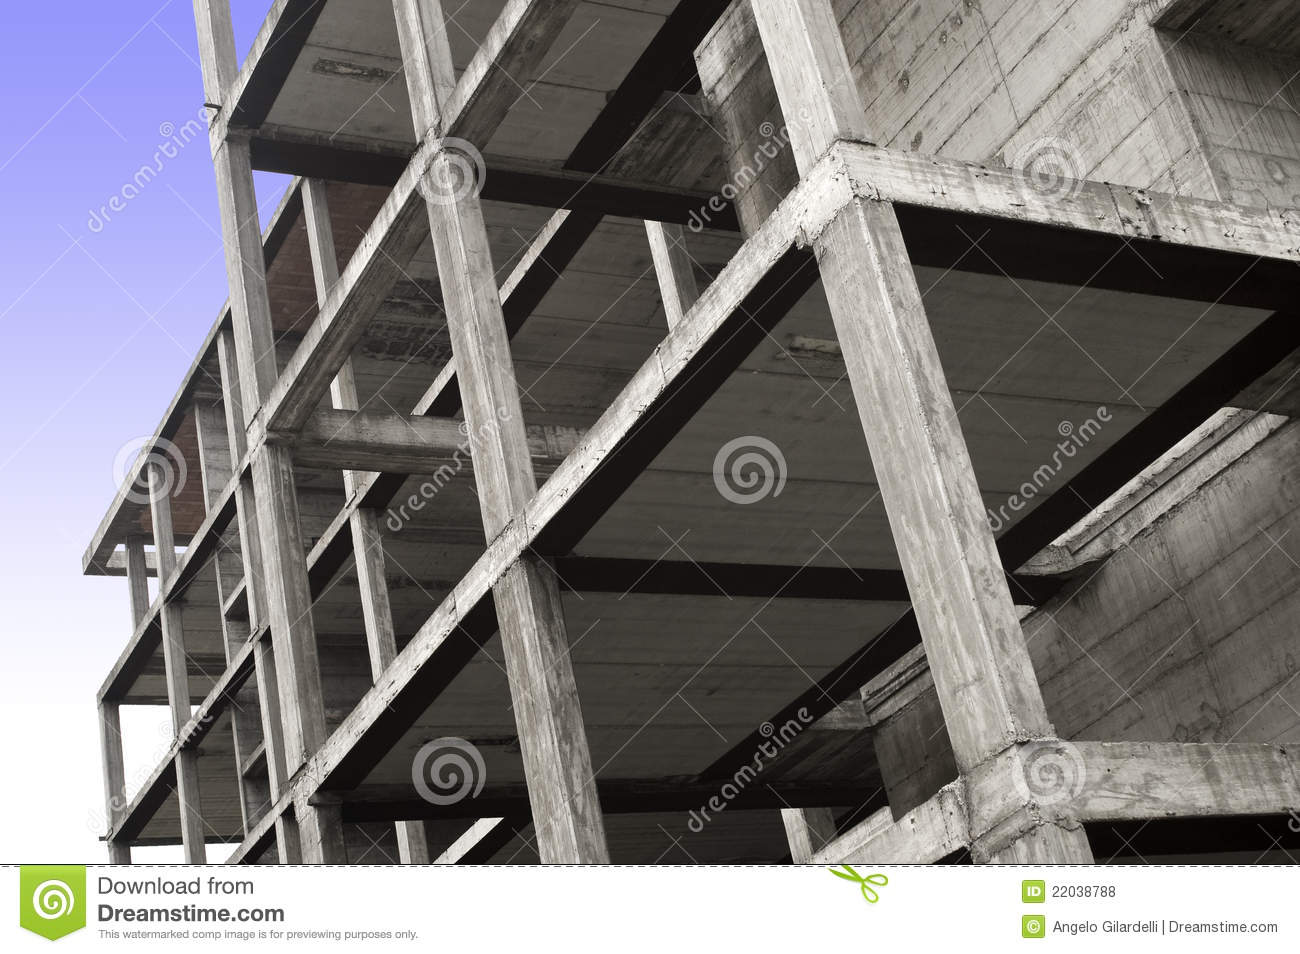 Concrete structure royalty free stock photos image 22038788 for Structure photography